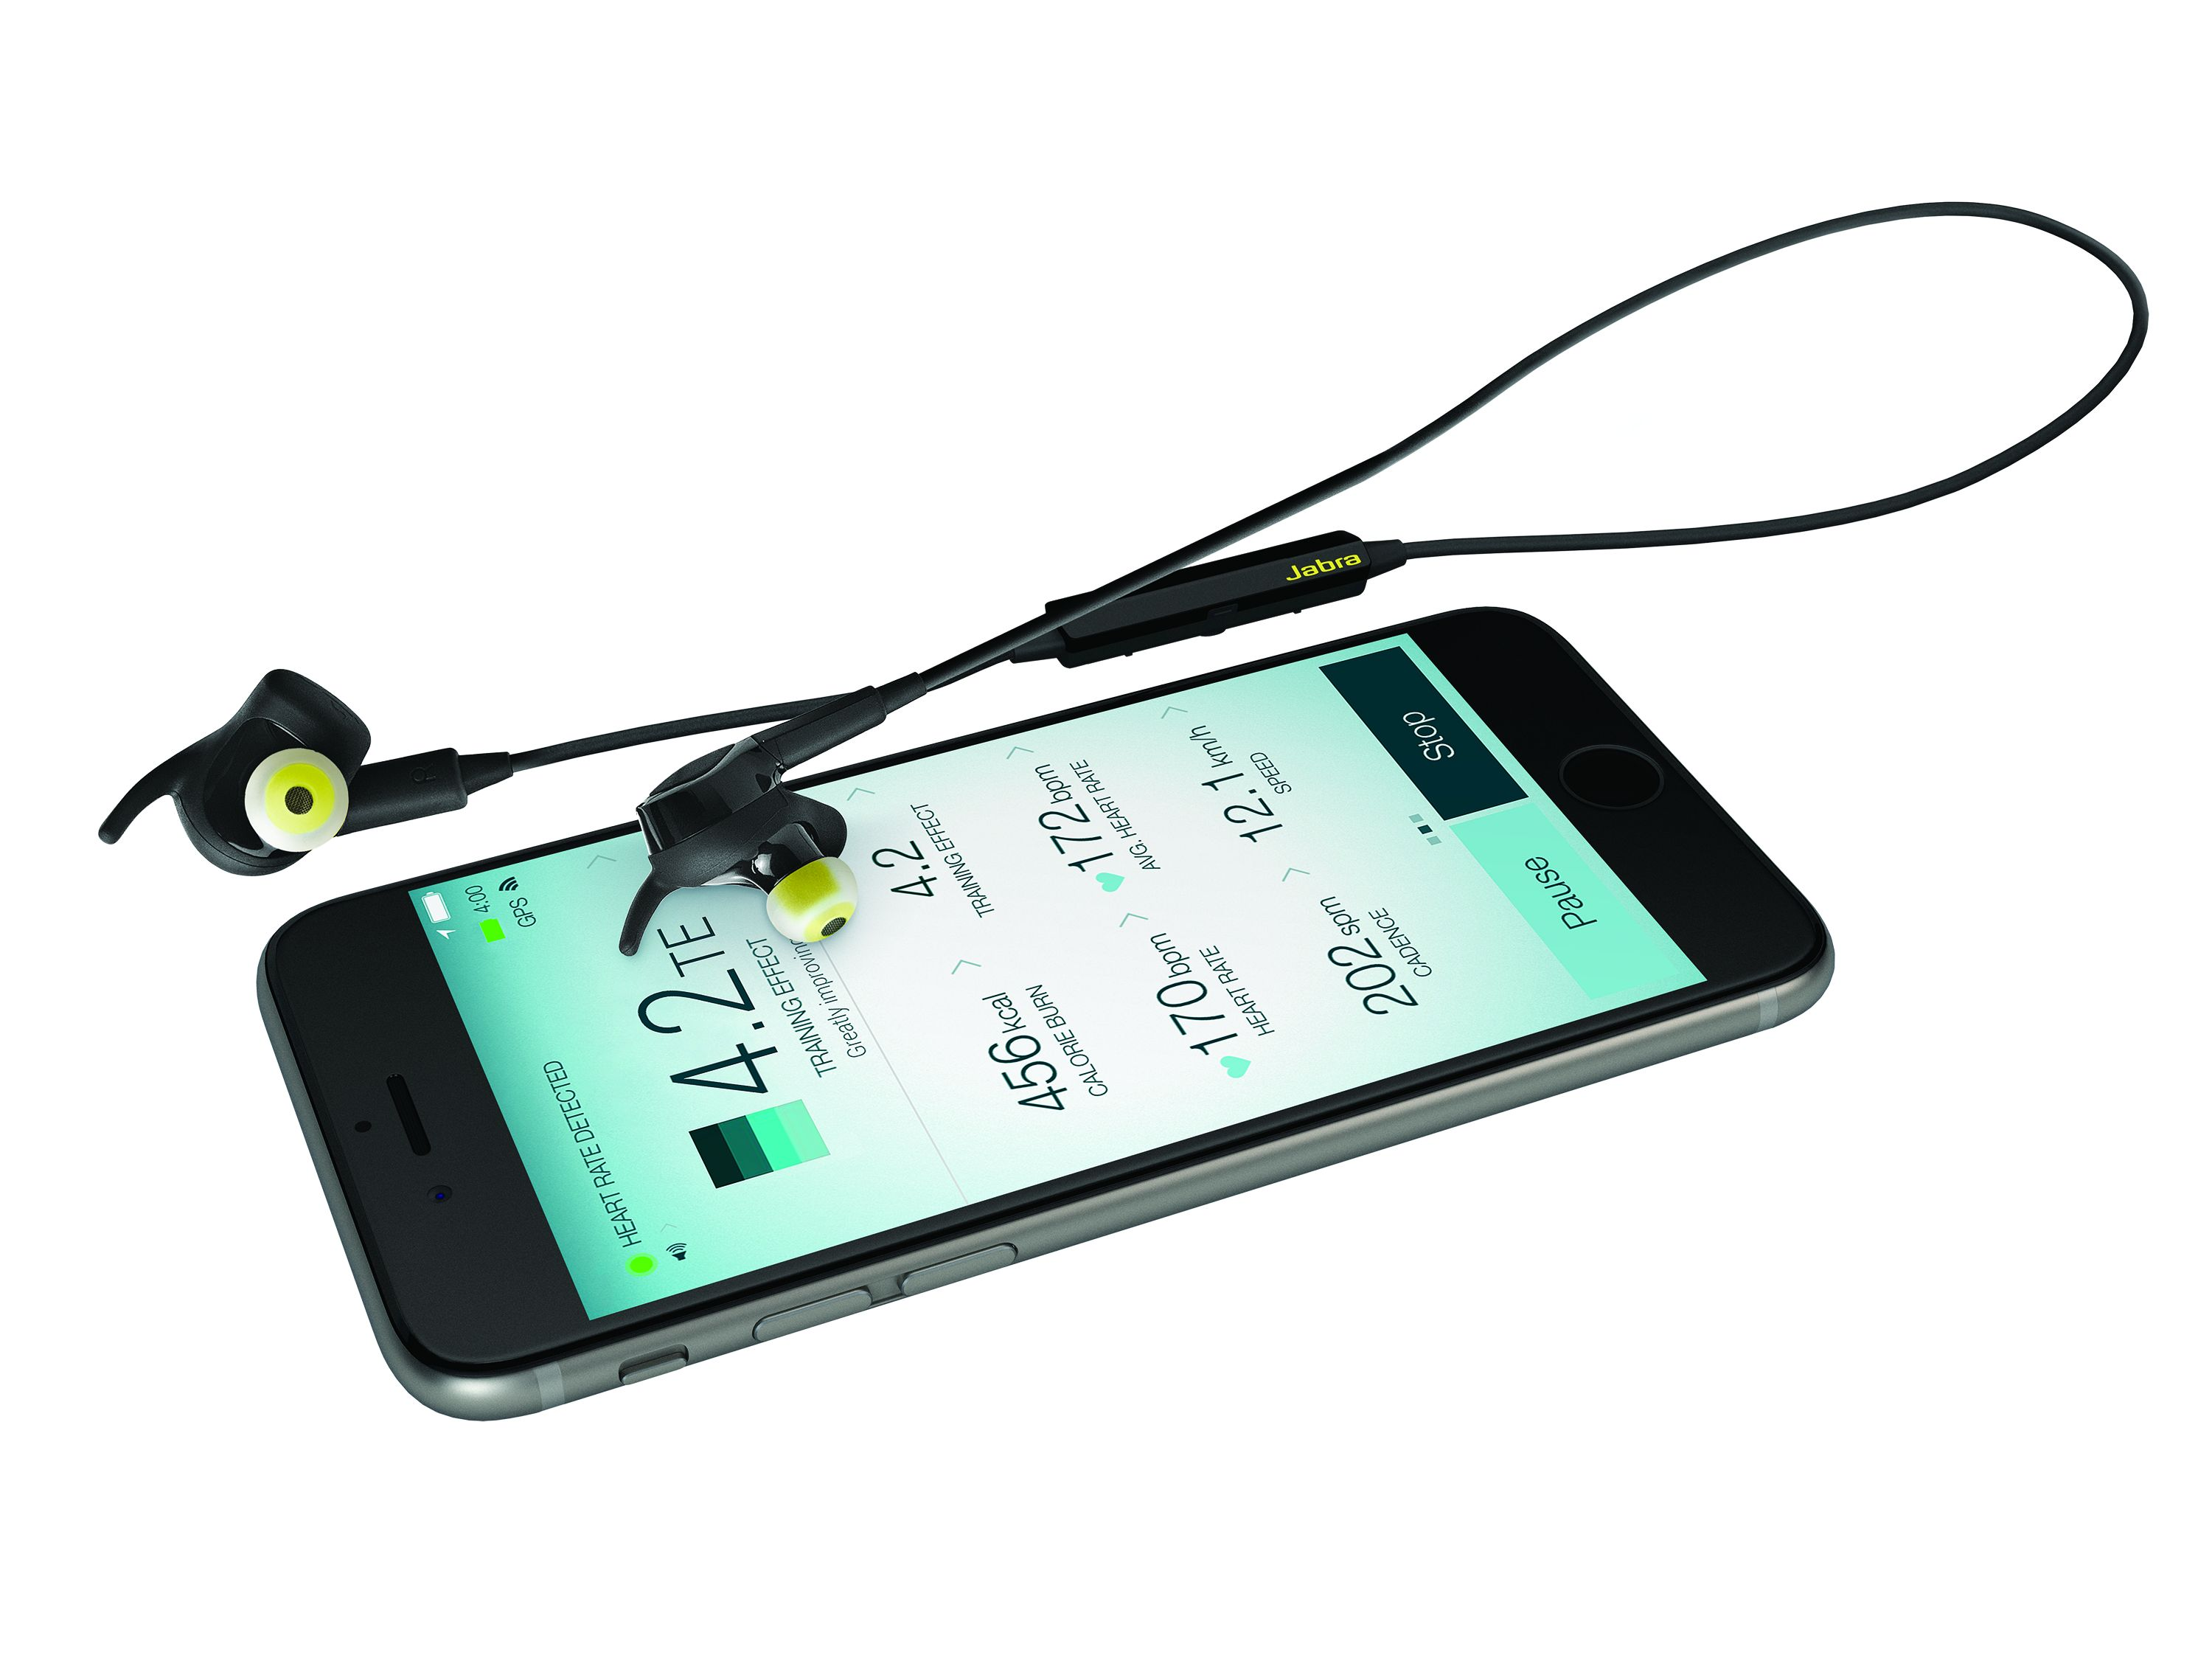 Jabra Sport Pulse SE phone app